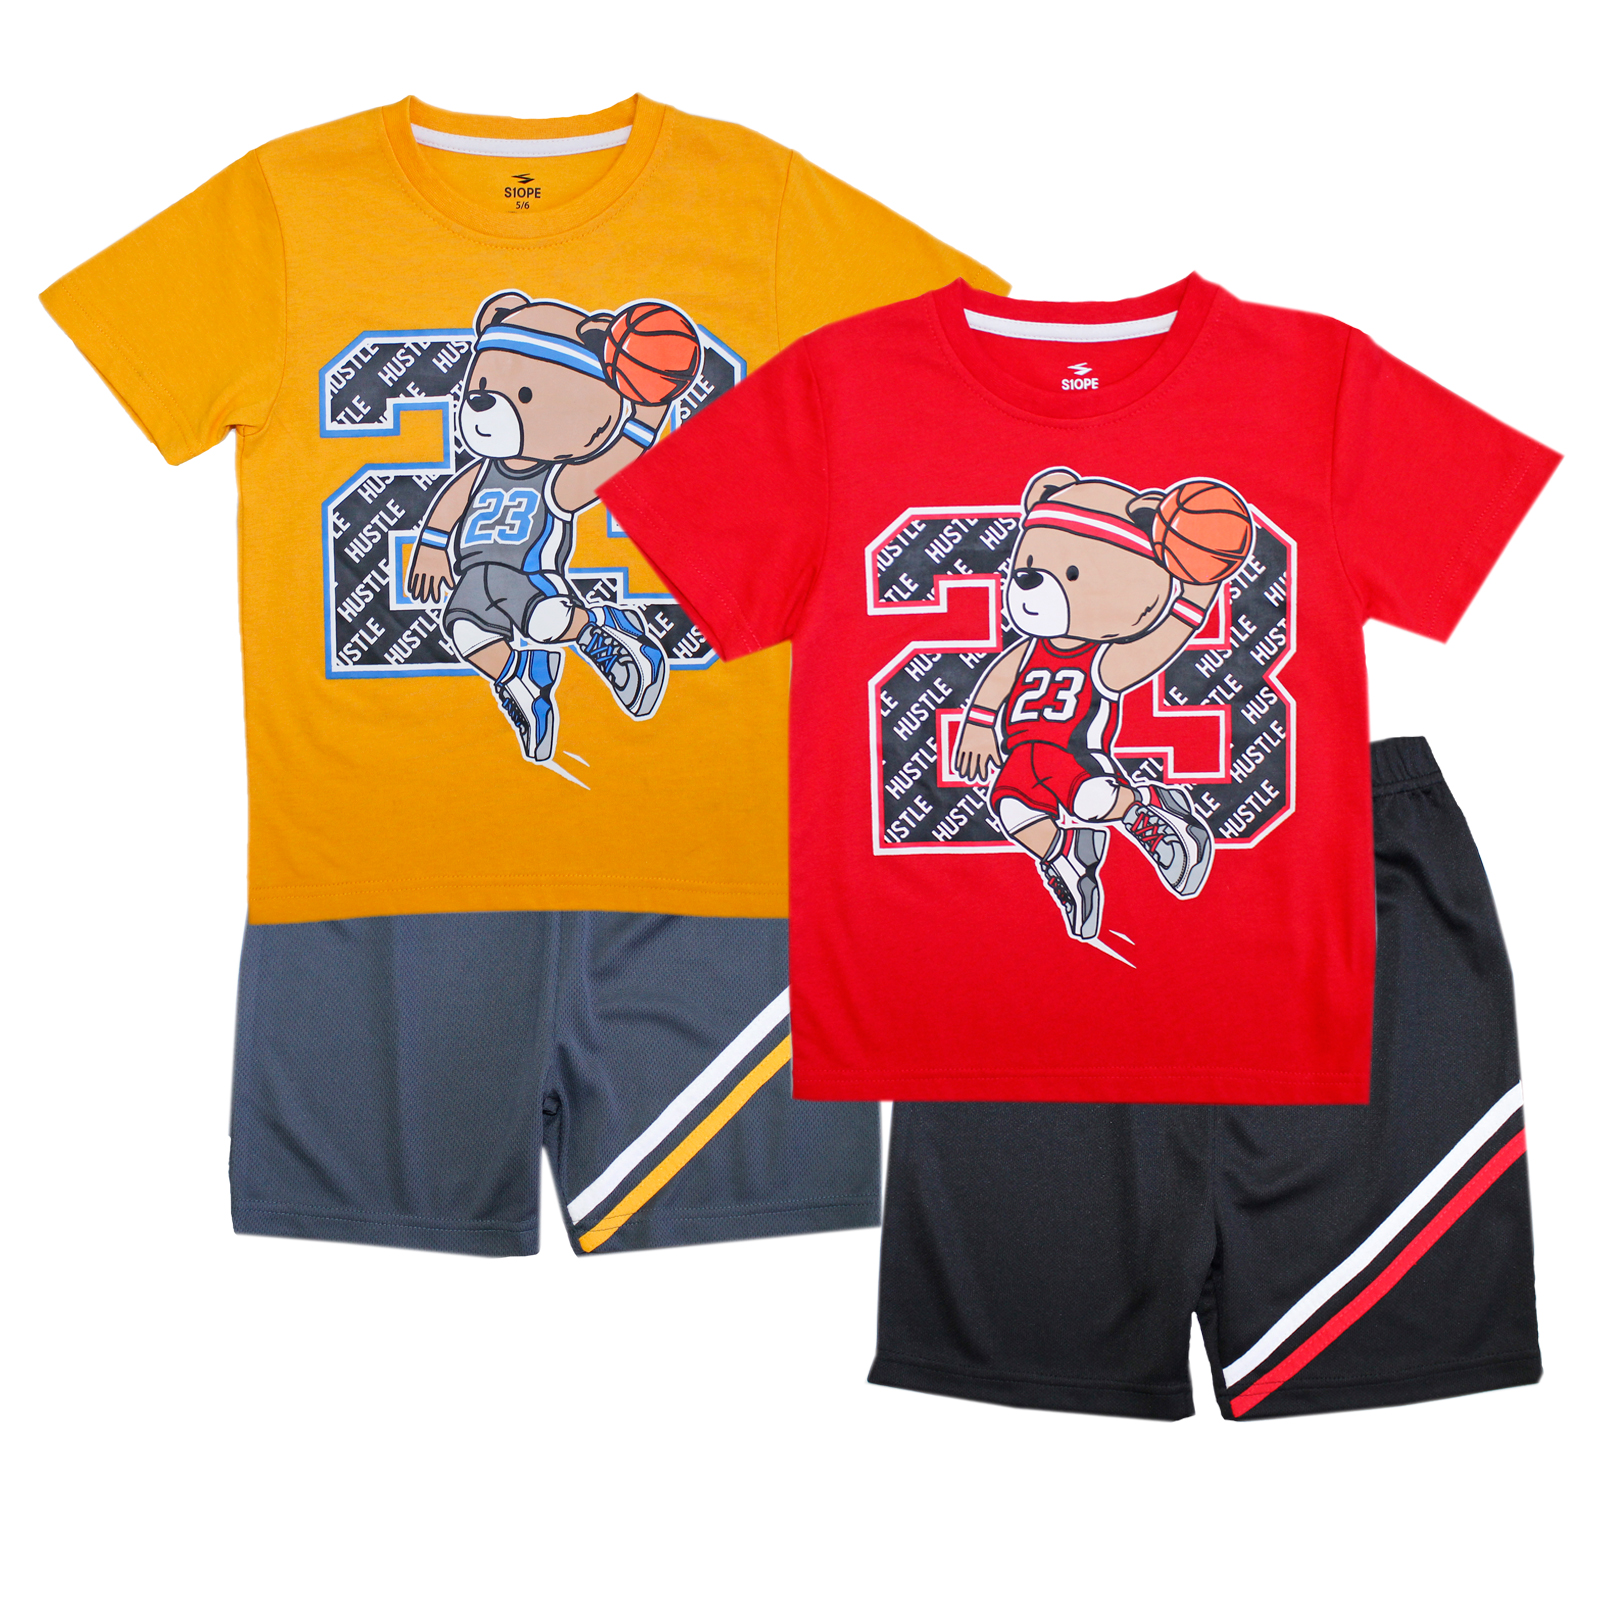 S1OPE Toddler Bear Screen Athletic Mesh Short Sets